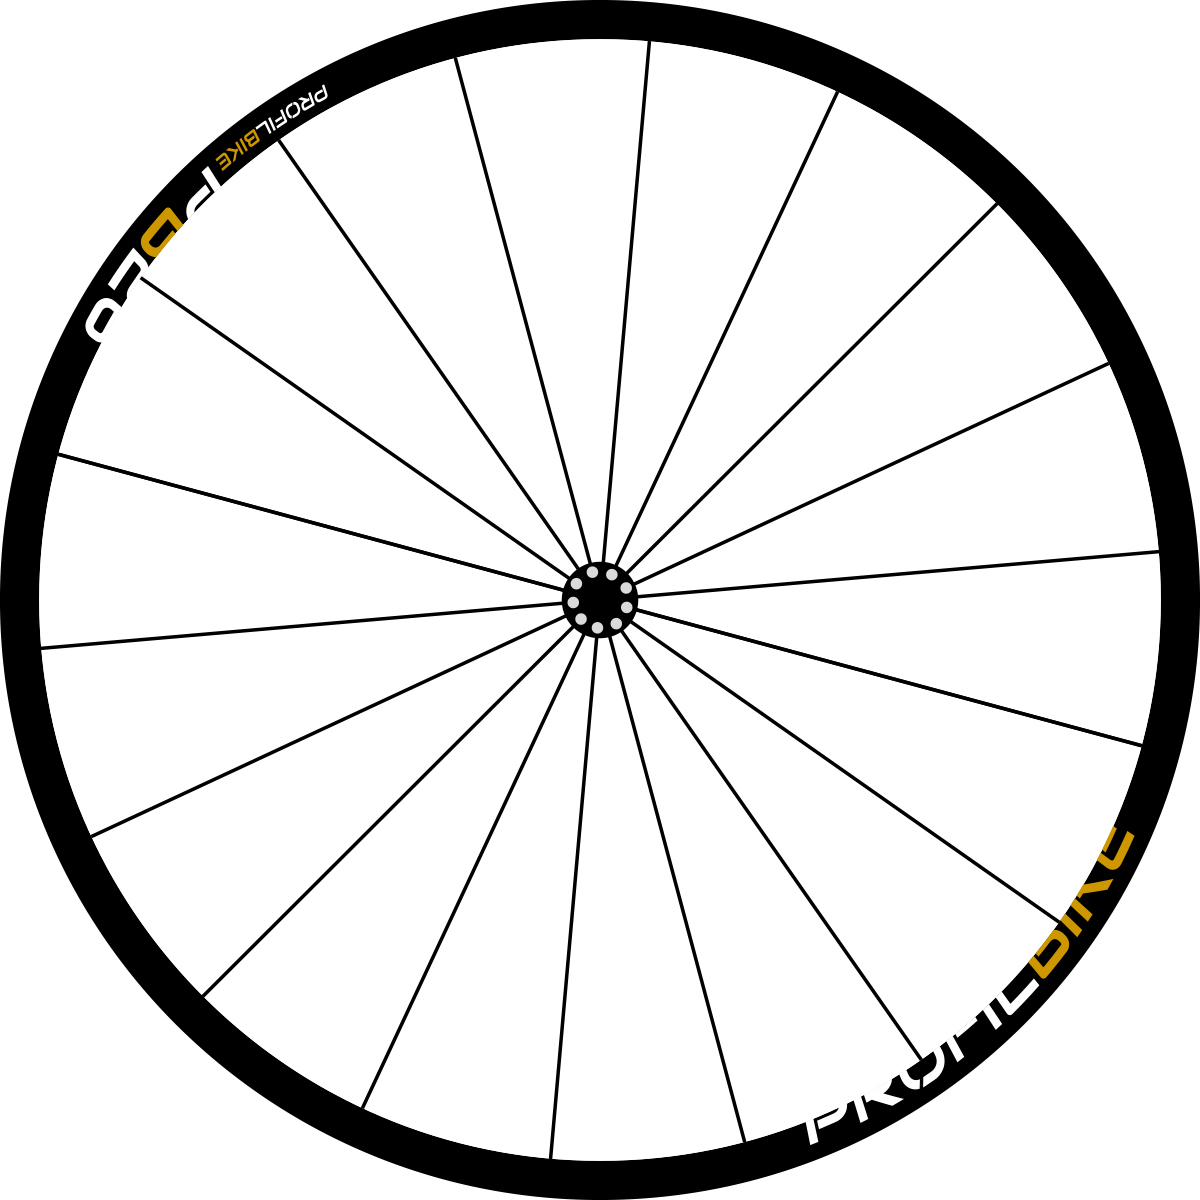 Profilbike PB26 ALU DISC design or